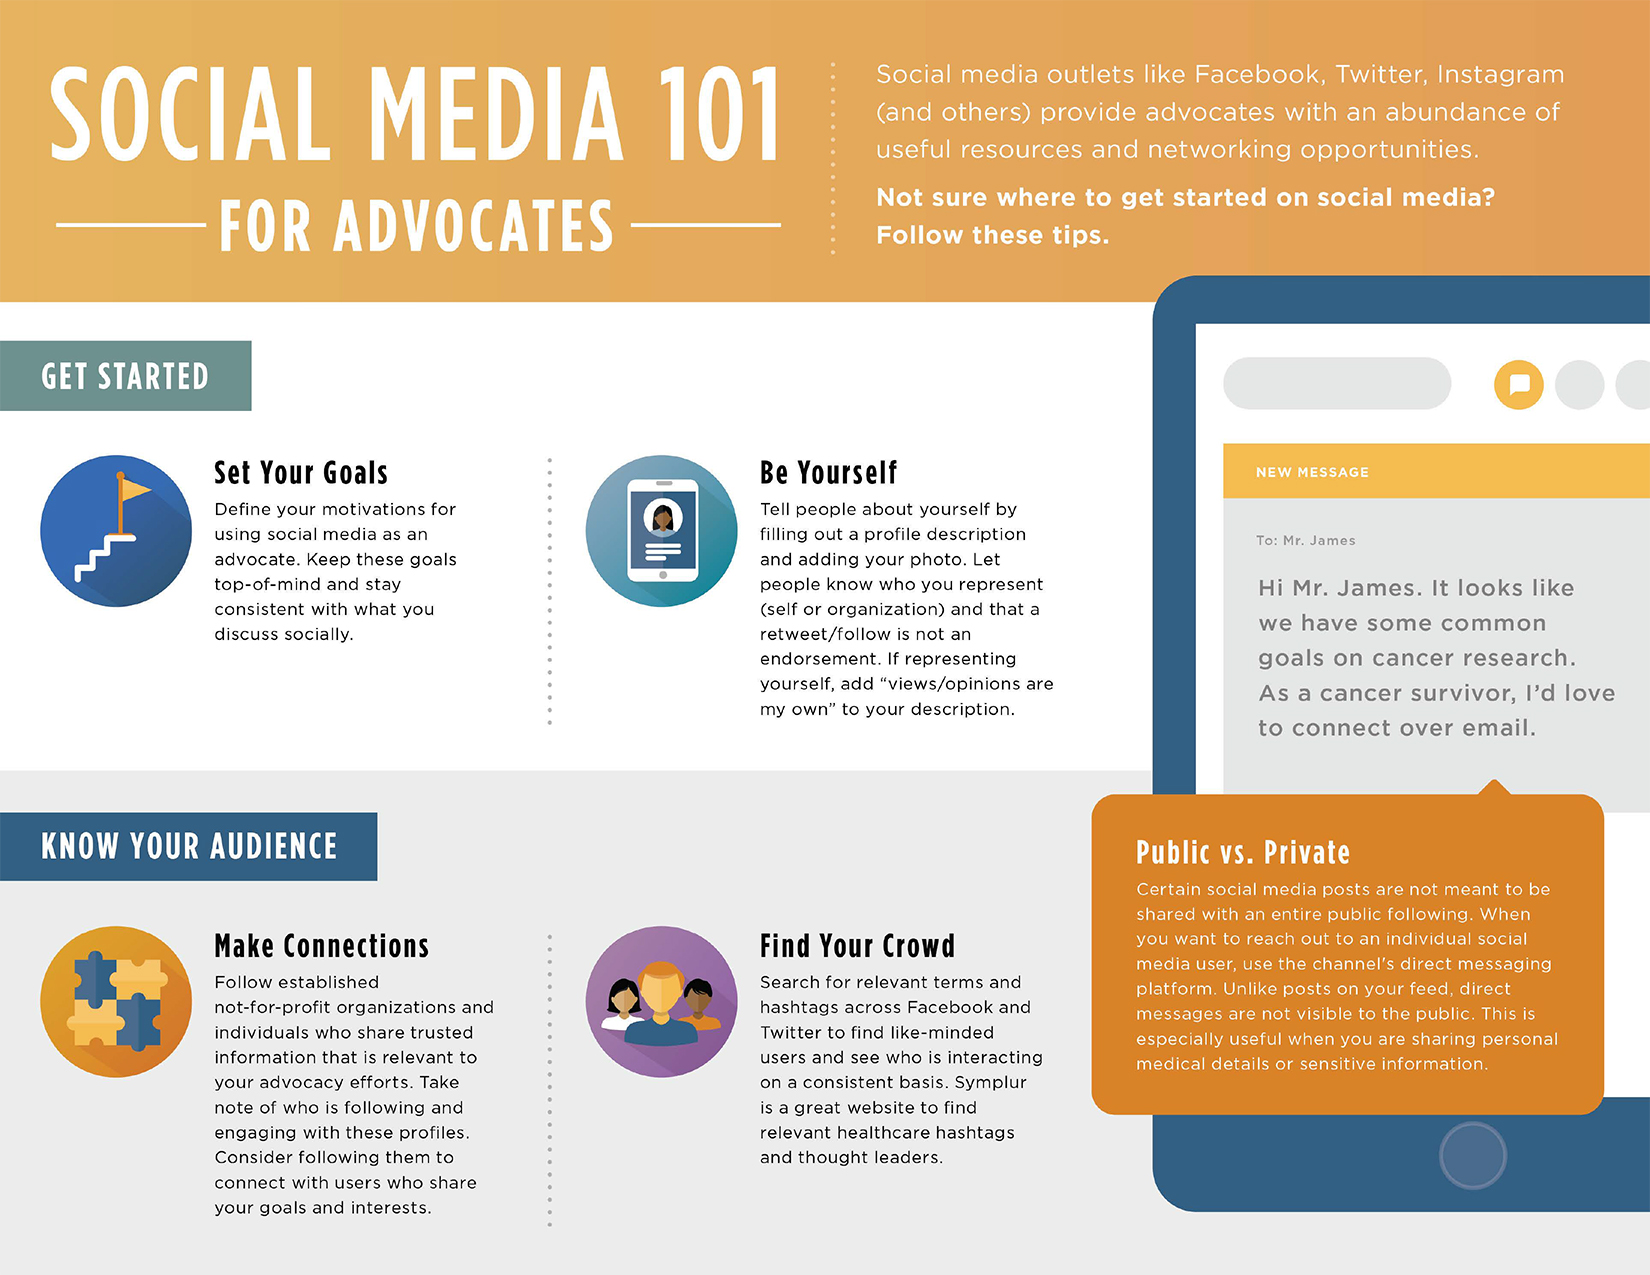 Social Media 101 for Advocates: image of page 1